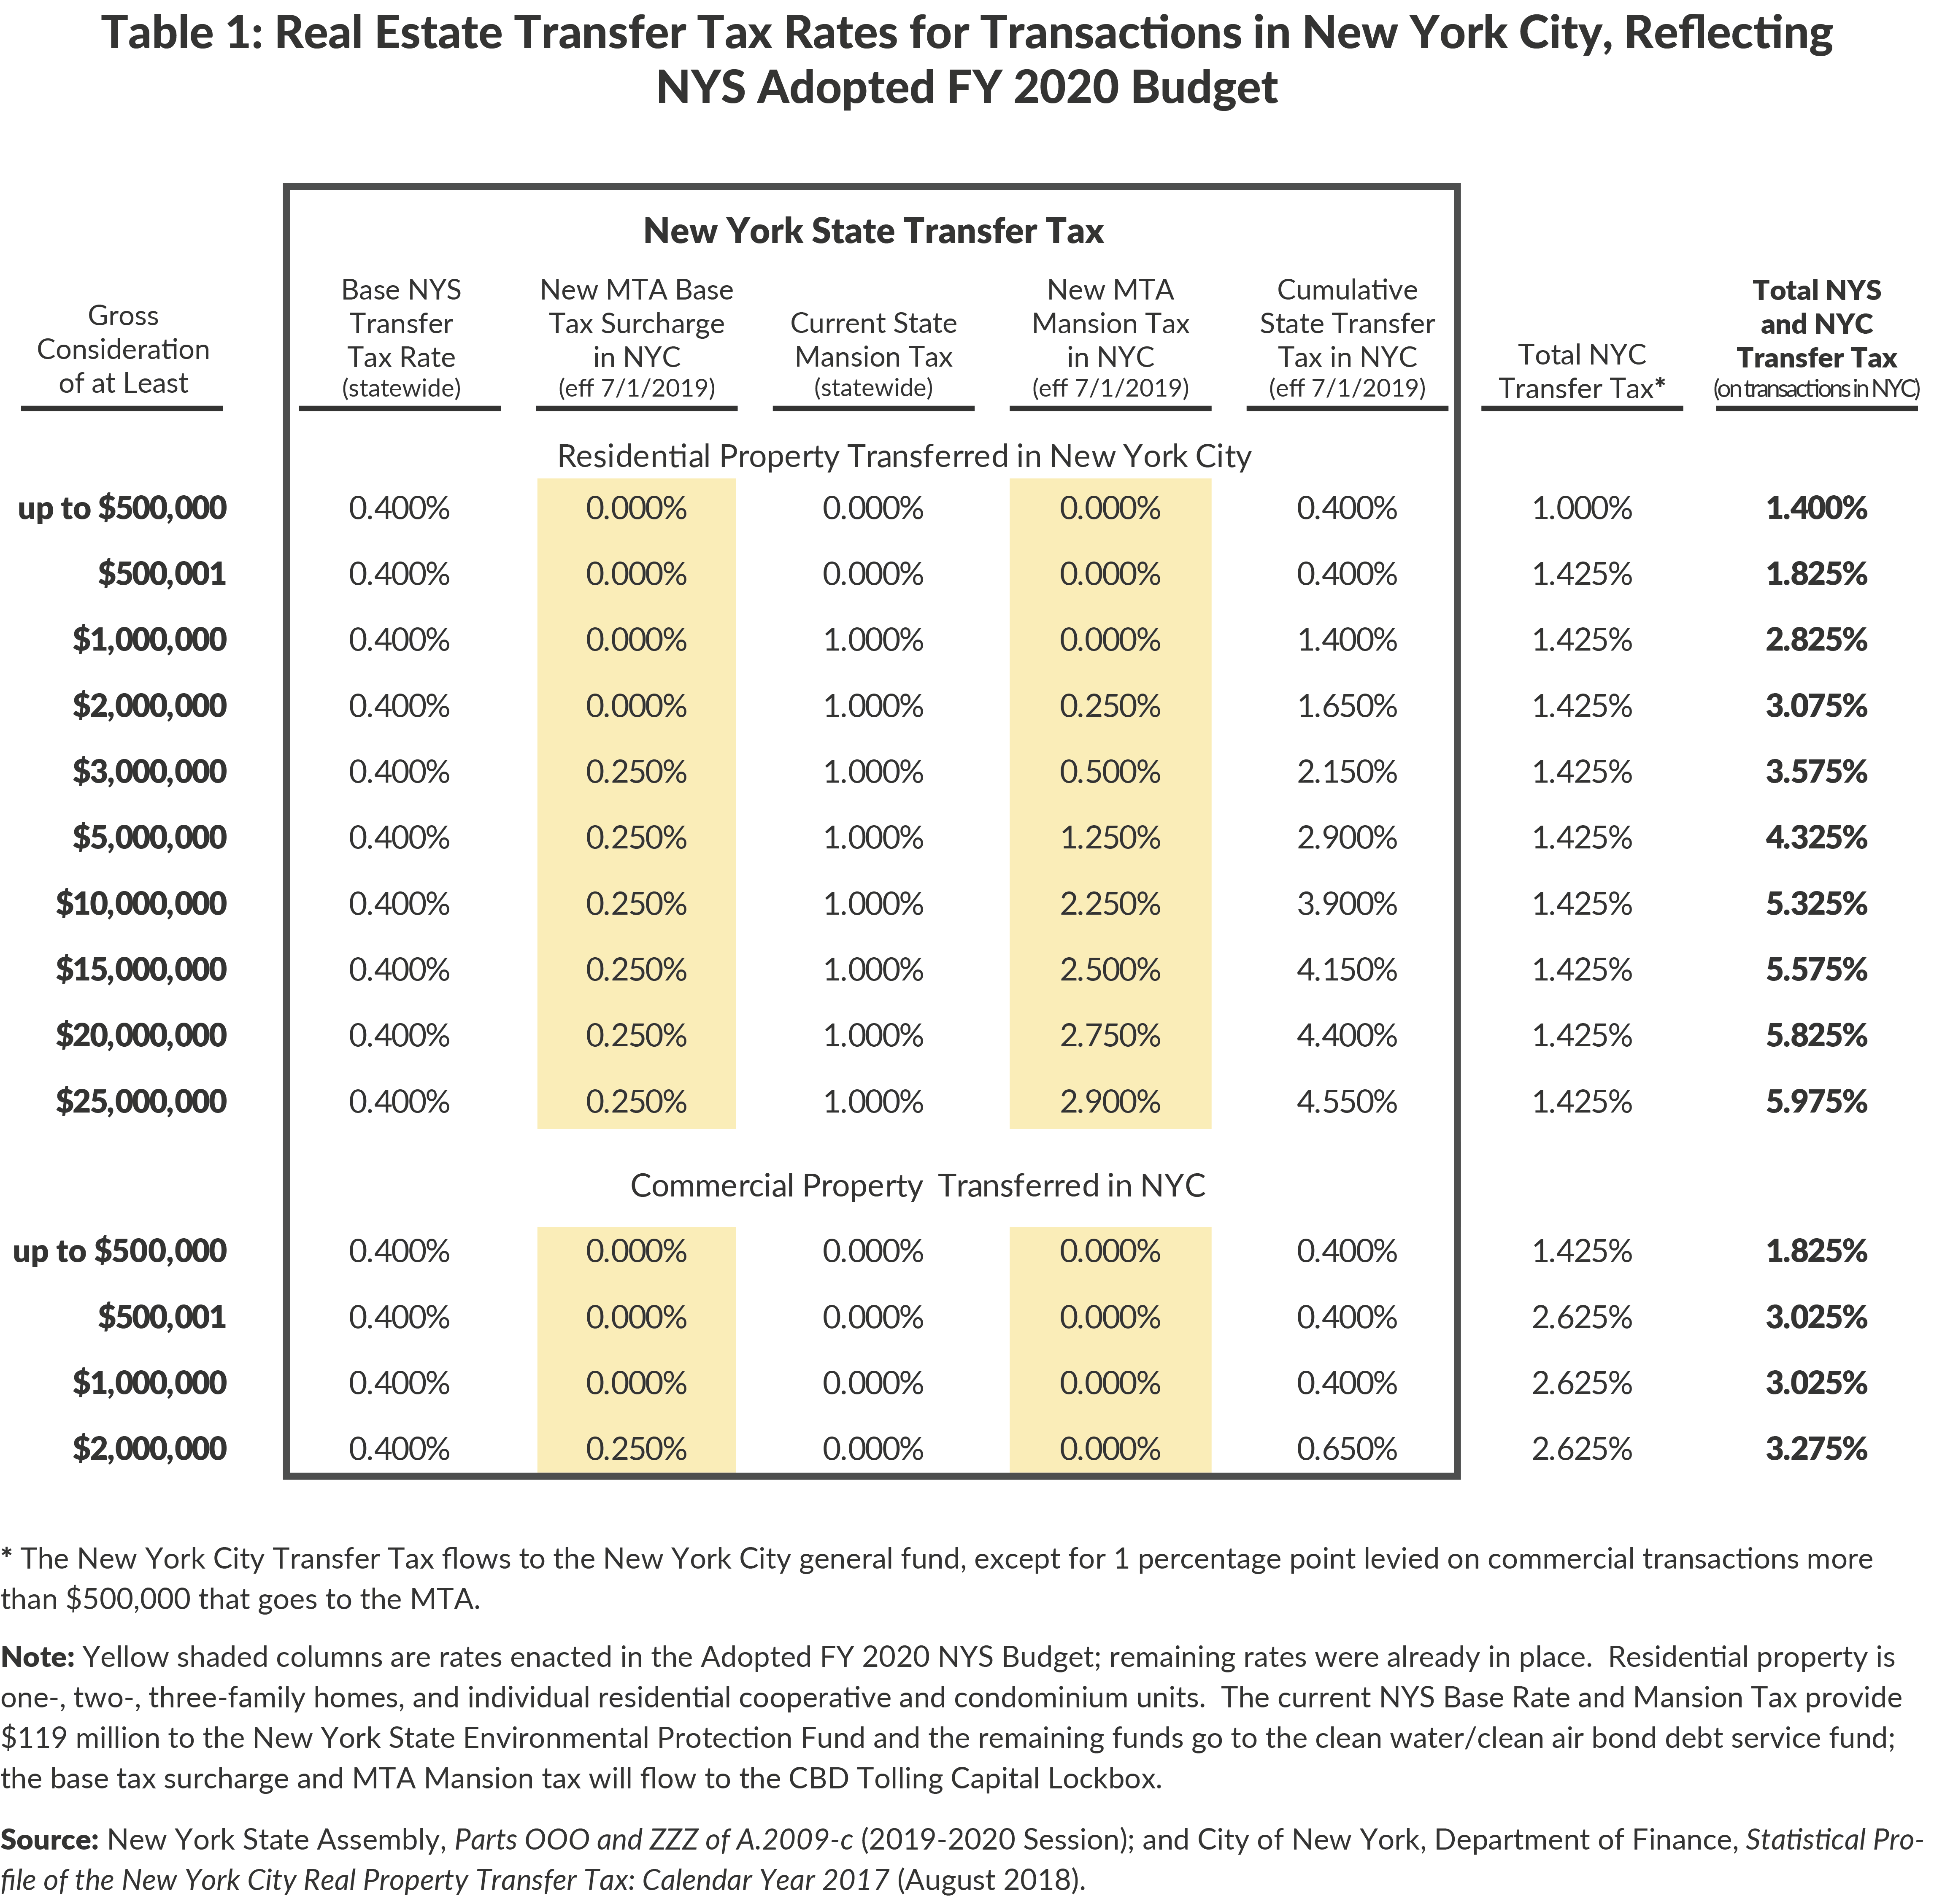 Table 1: Real Estate Transfer Tax Rates for Transactions in New York City, ReflectingNYS Adopted FY 2020 Budget